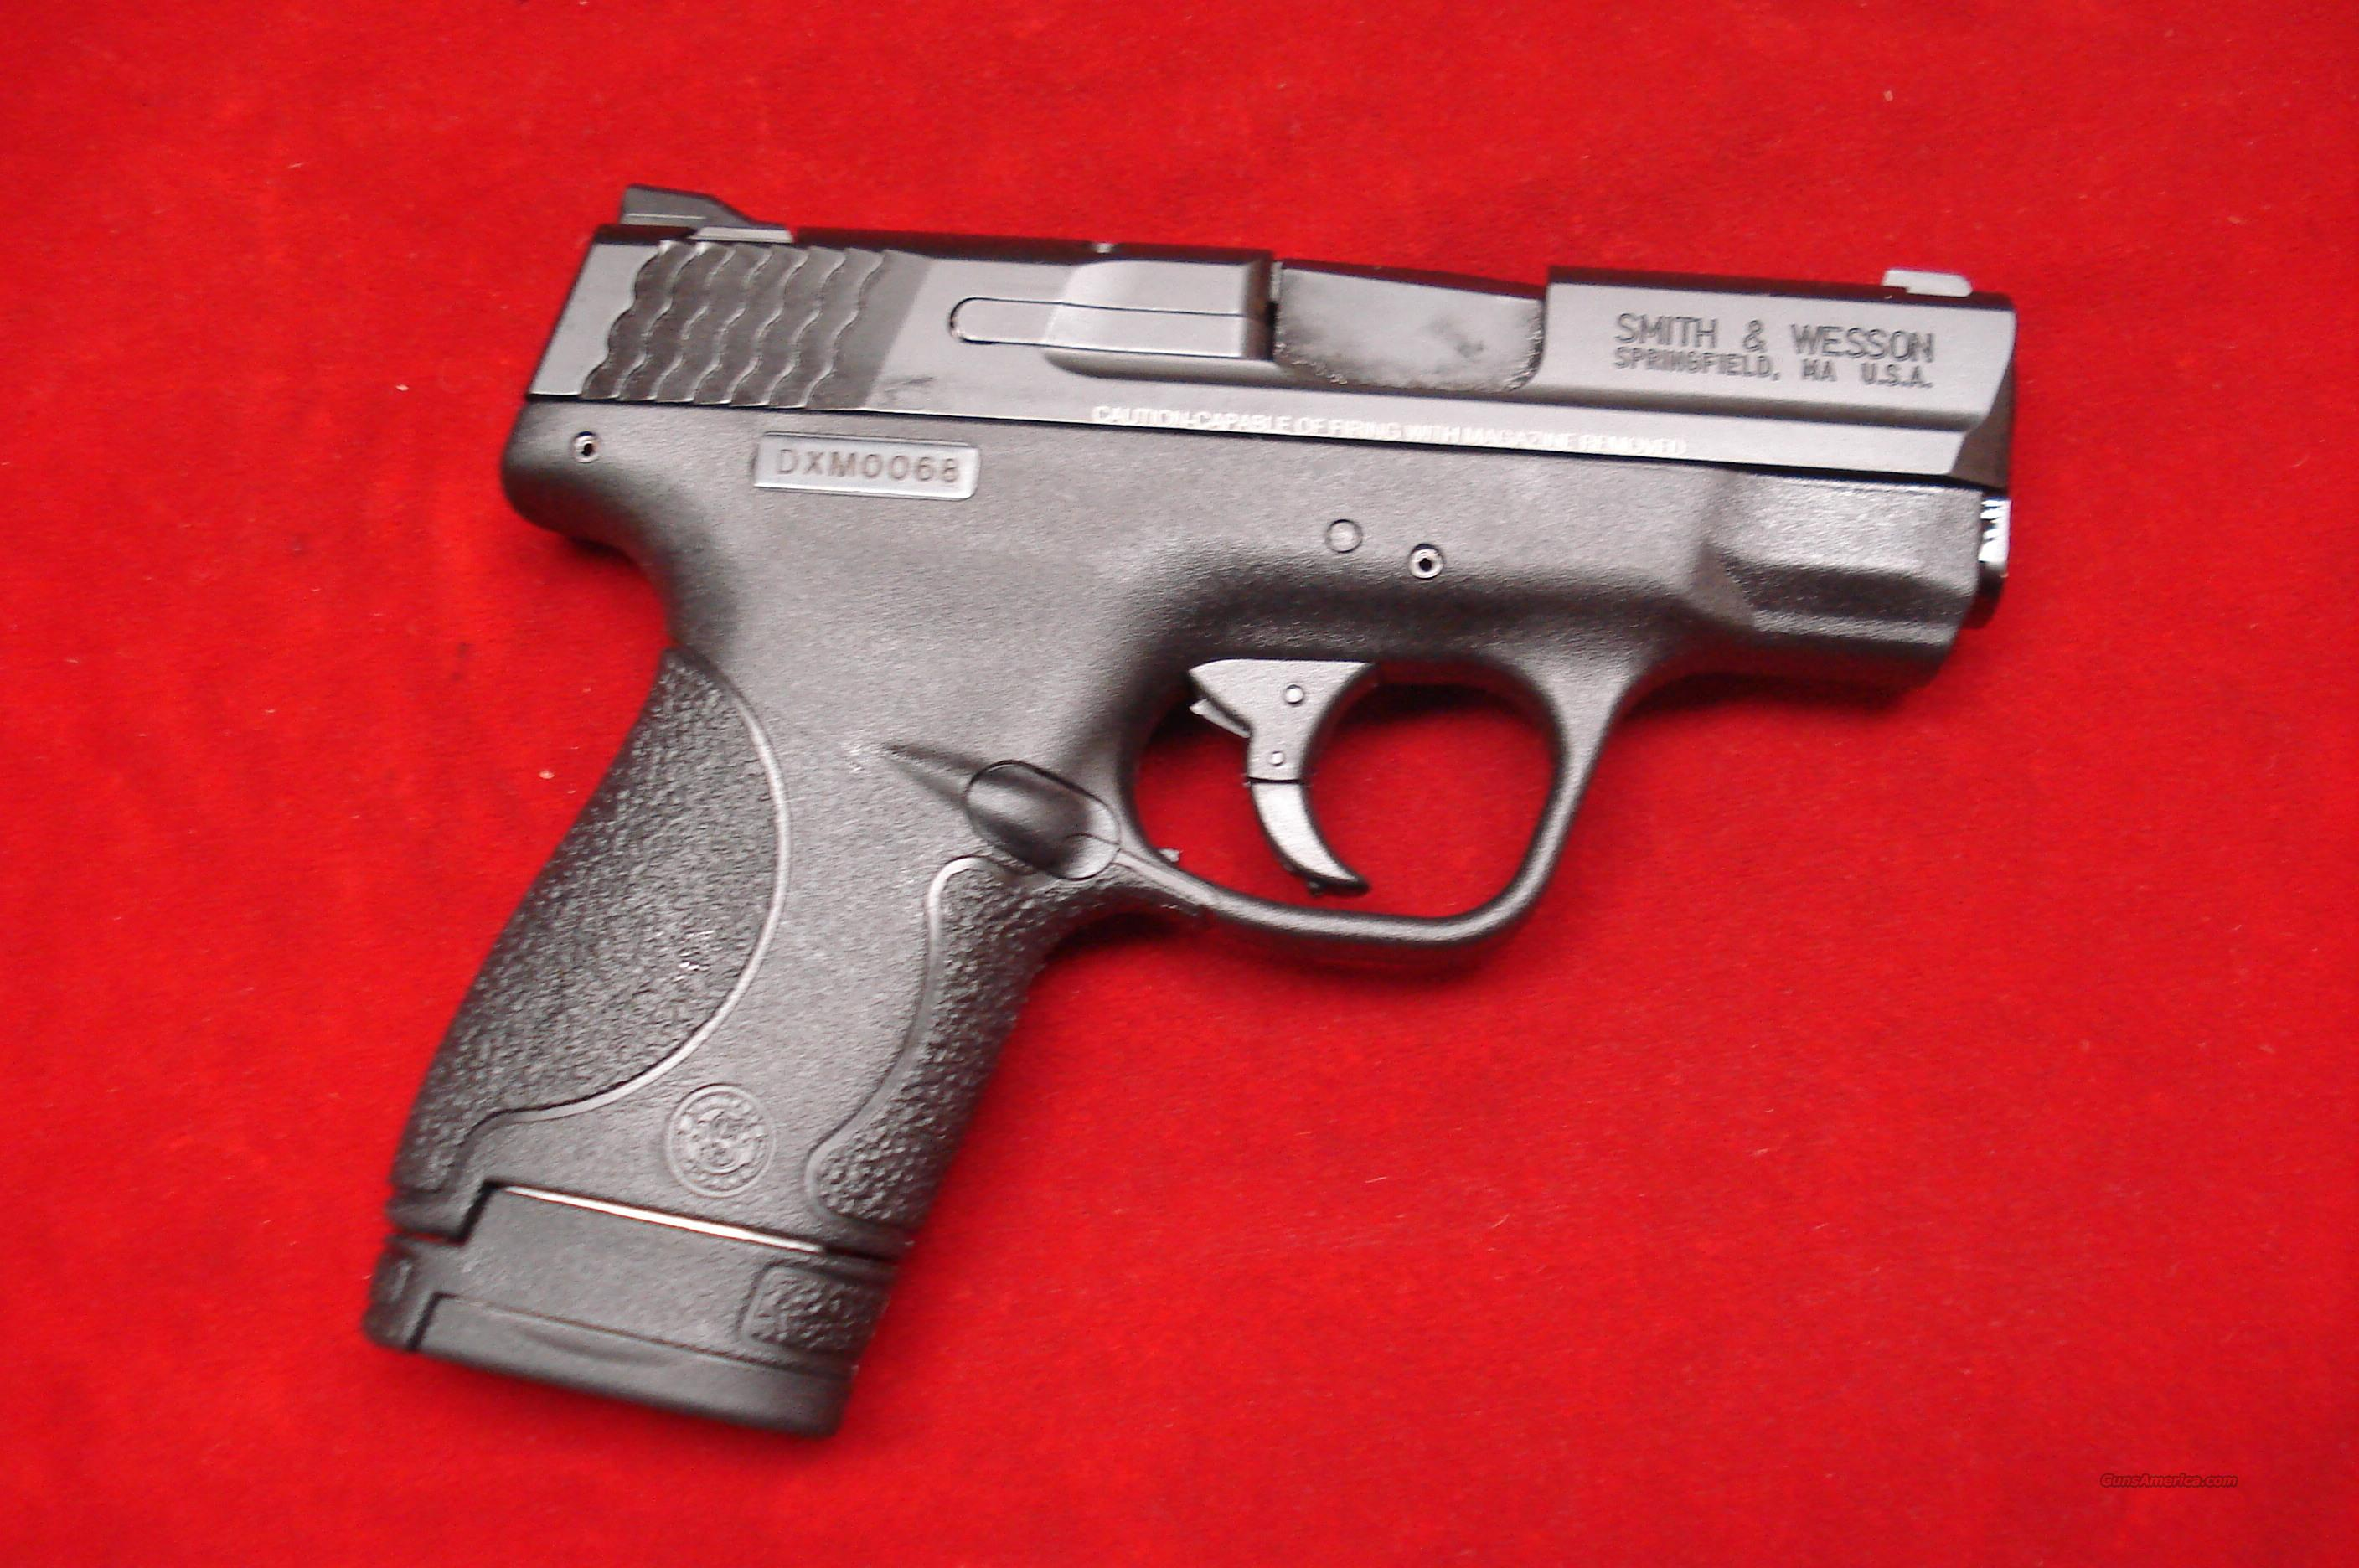 SMITH AND WESSON M&P SHIELD 9MM NEW (180021) for sale